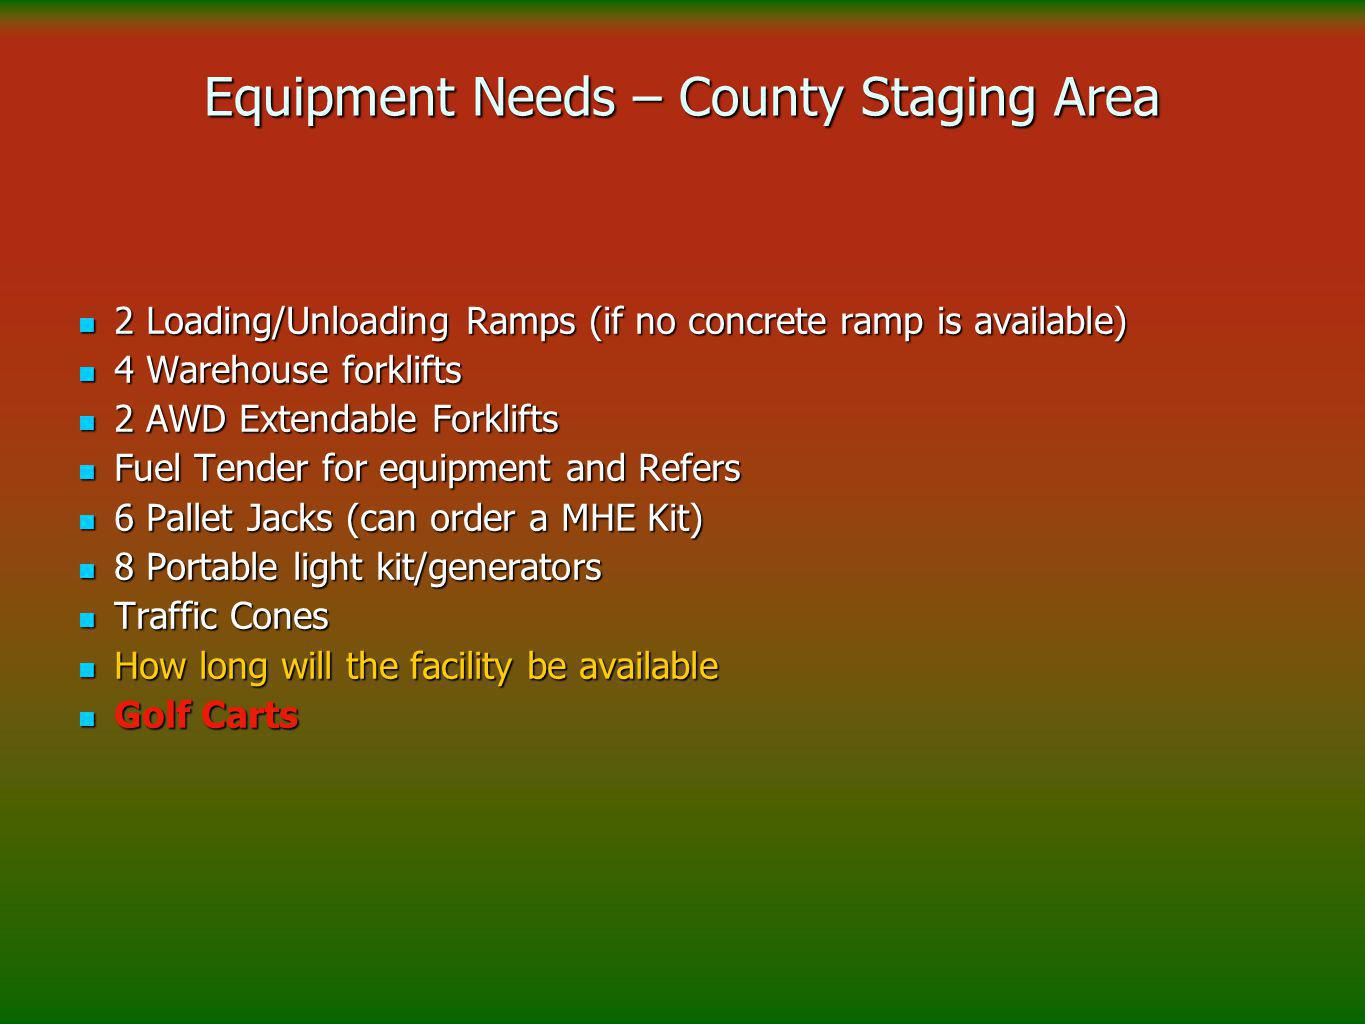 Equipment Needs – County Staging Area 2 Loading/Unloading Ramps (if no concrete ramp is available) 2 Loading/Unloading Ramps (if no concrete ramp is available) 4 Warehouse forklifts 4 Warehouse forklifts 2 AWD Extendable Forklifts 2 AWD Extendable Forklifts Fuel Tender for equipment and Refers Fuel Tender for equipment and Refers 6 Pallet Jacks (can order a MHE Kit) 6 Pallet Jacks (can order a MHE Kit) 8 Portable light kit/generators 8 Portable light kit/generators Traffic Cones Traffic Cones How long will the facility be available How long will the facility be available Golf Carts Golf Carts